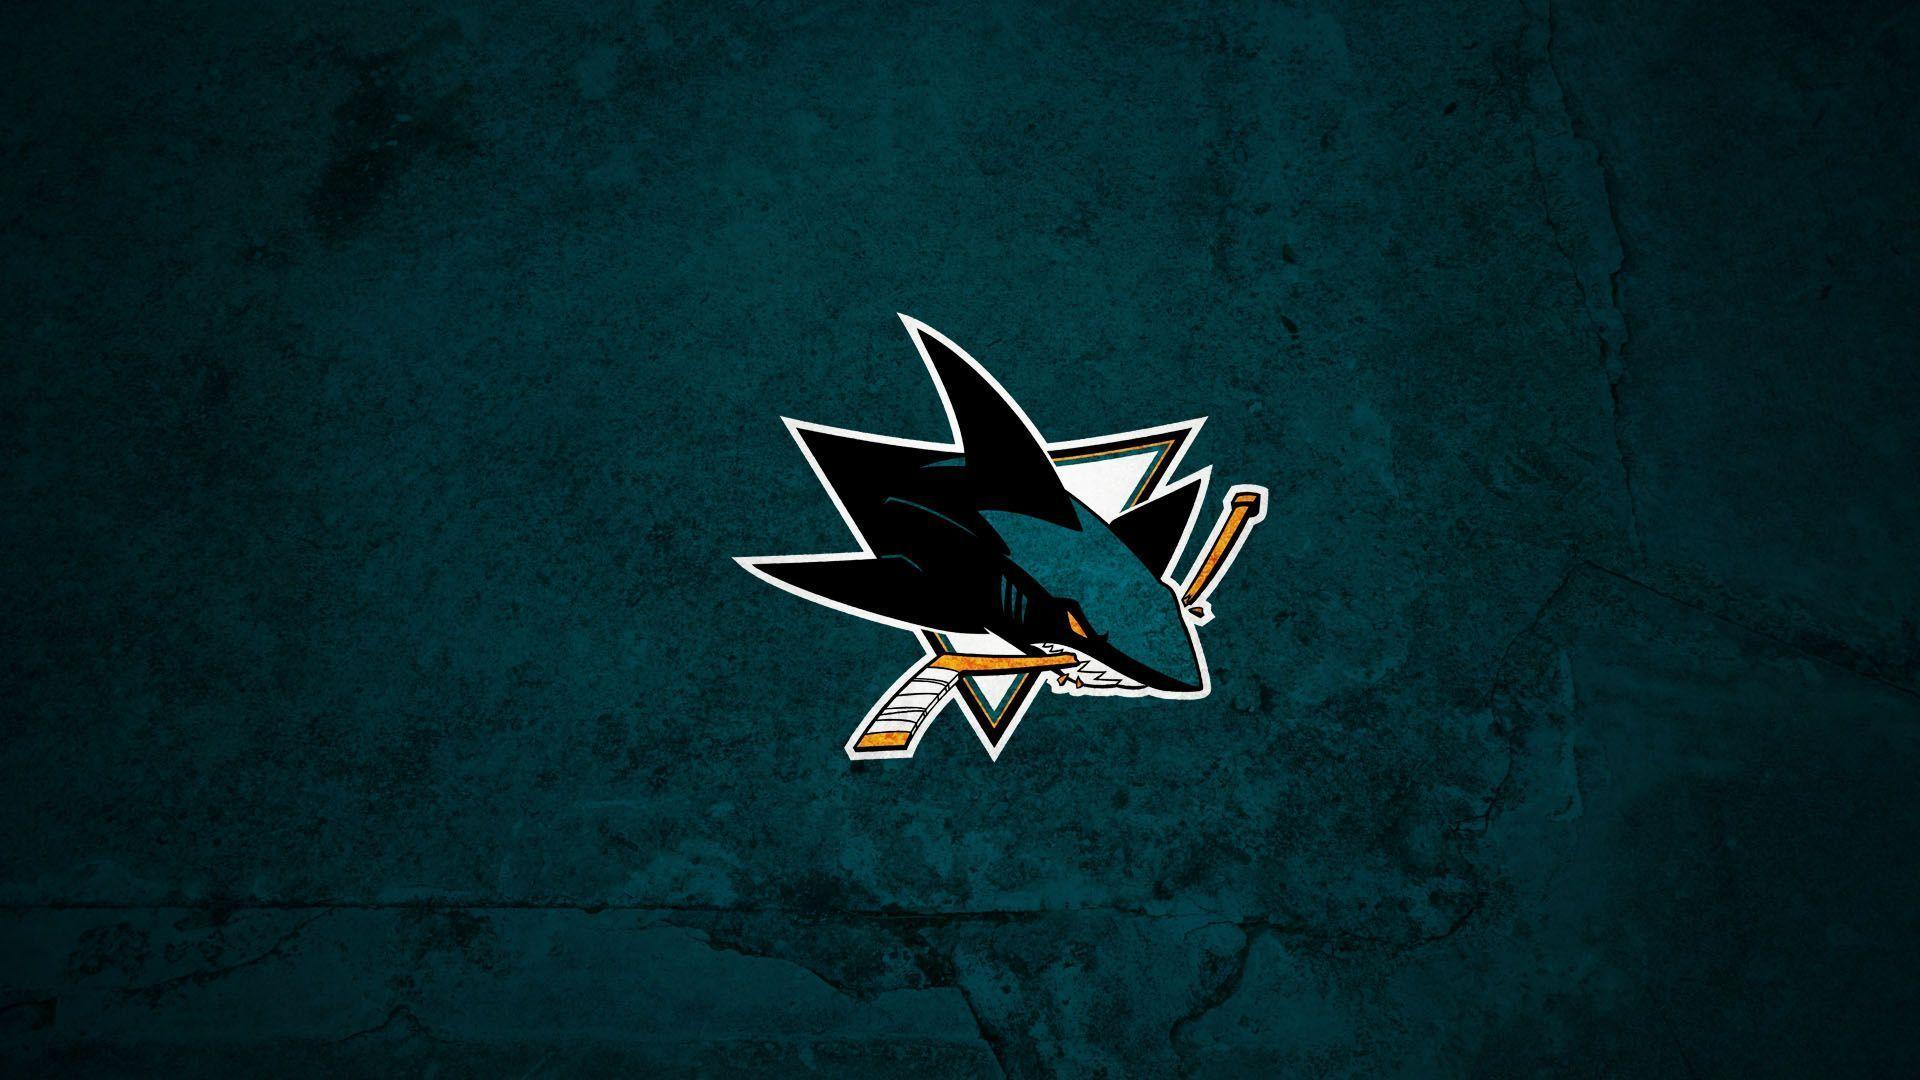 Galaxy S4 3d Live Wallpaper Apk Download San Jose Sharks Hd Wallpaper Gallery